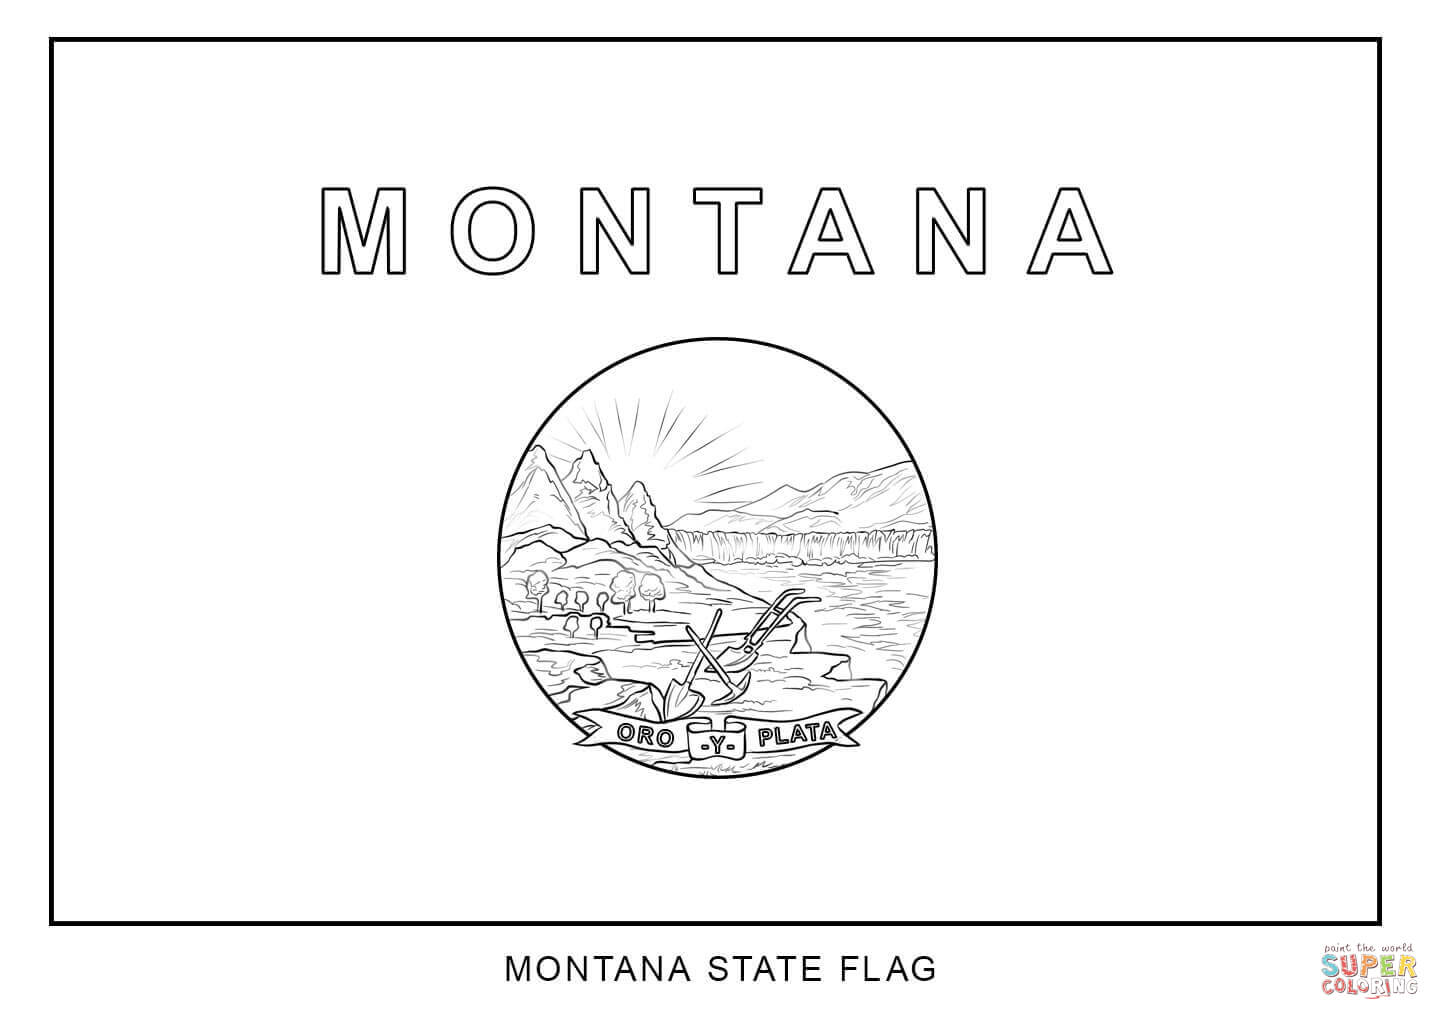 Montana Map Coloring Page Flag Of Montana Coloring Page Free Printable Coloring Pages